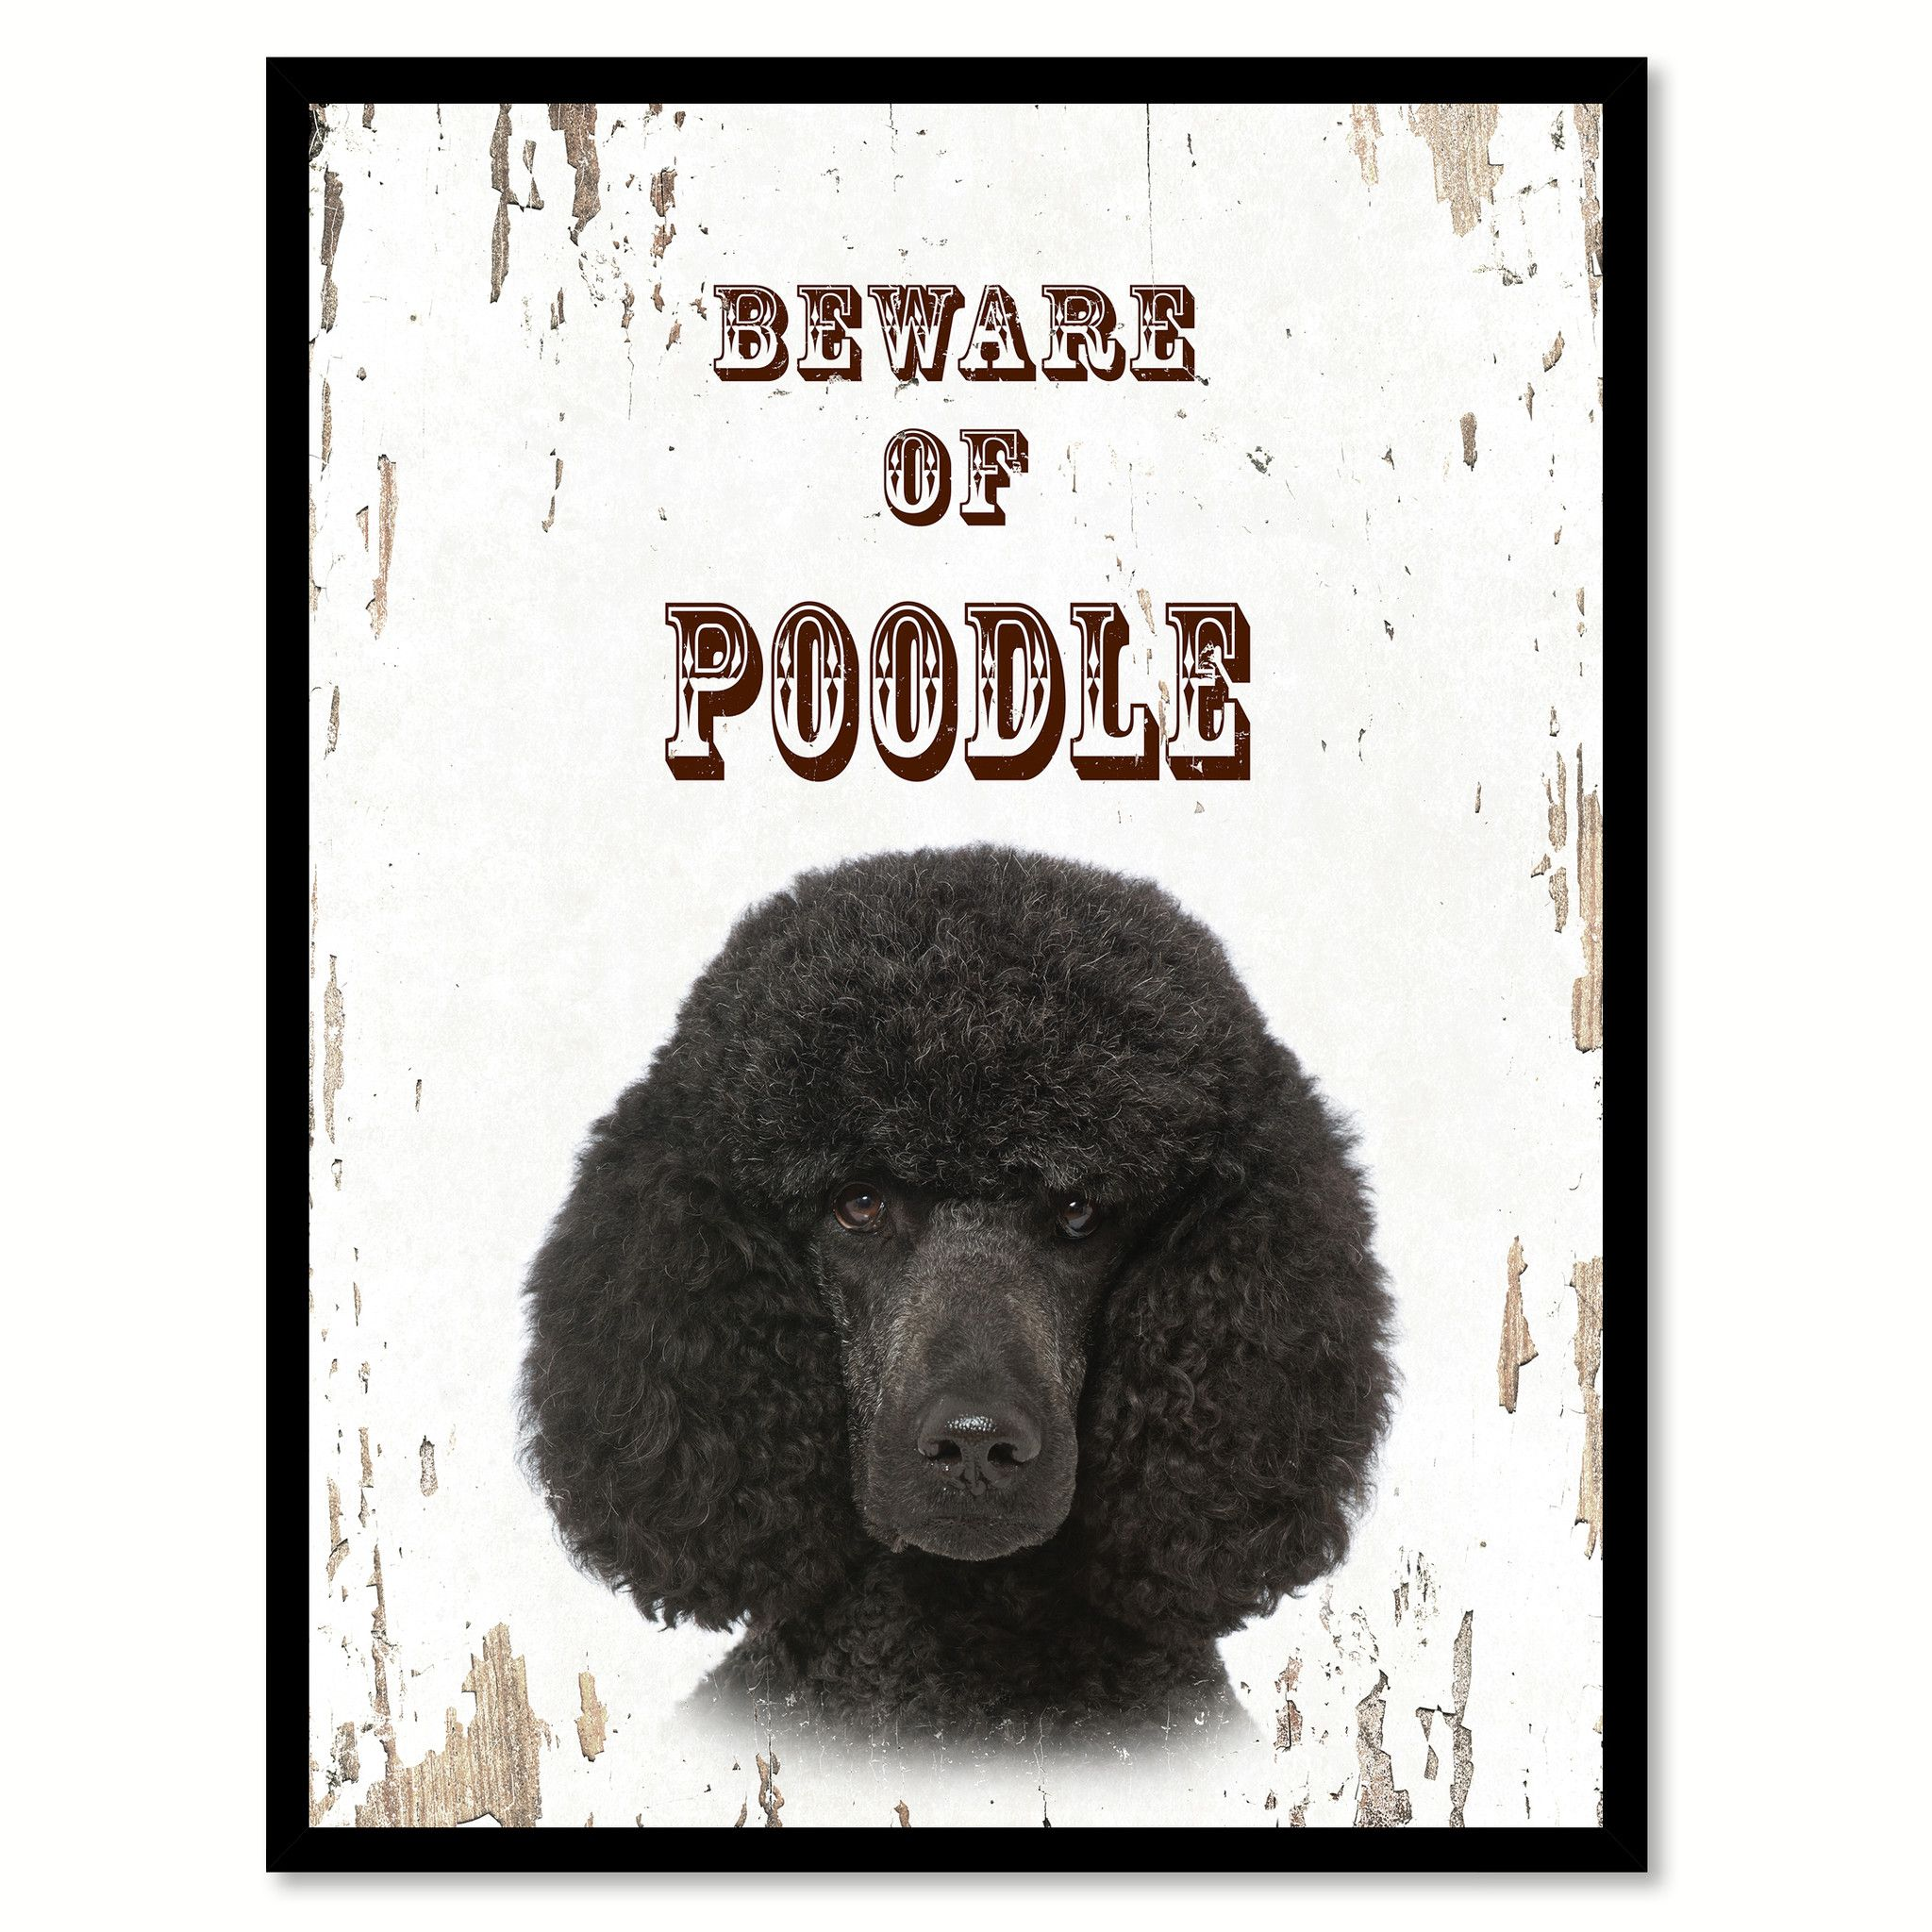 Beware of Poodle Dog Sign Gifts Canvas Print Home Décor Picture Frames Wall Art